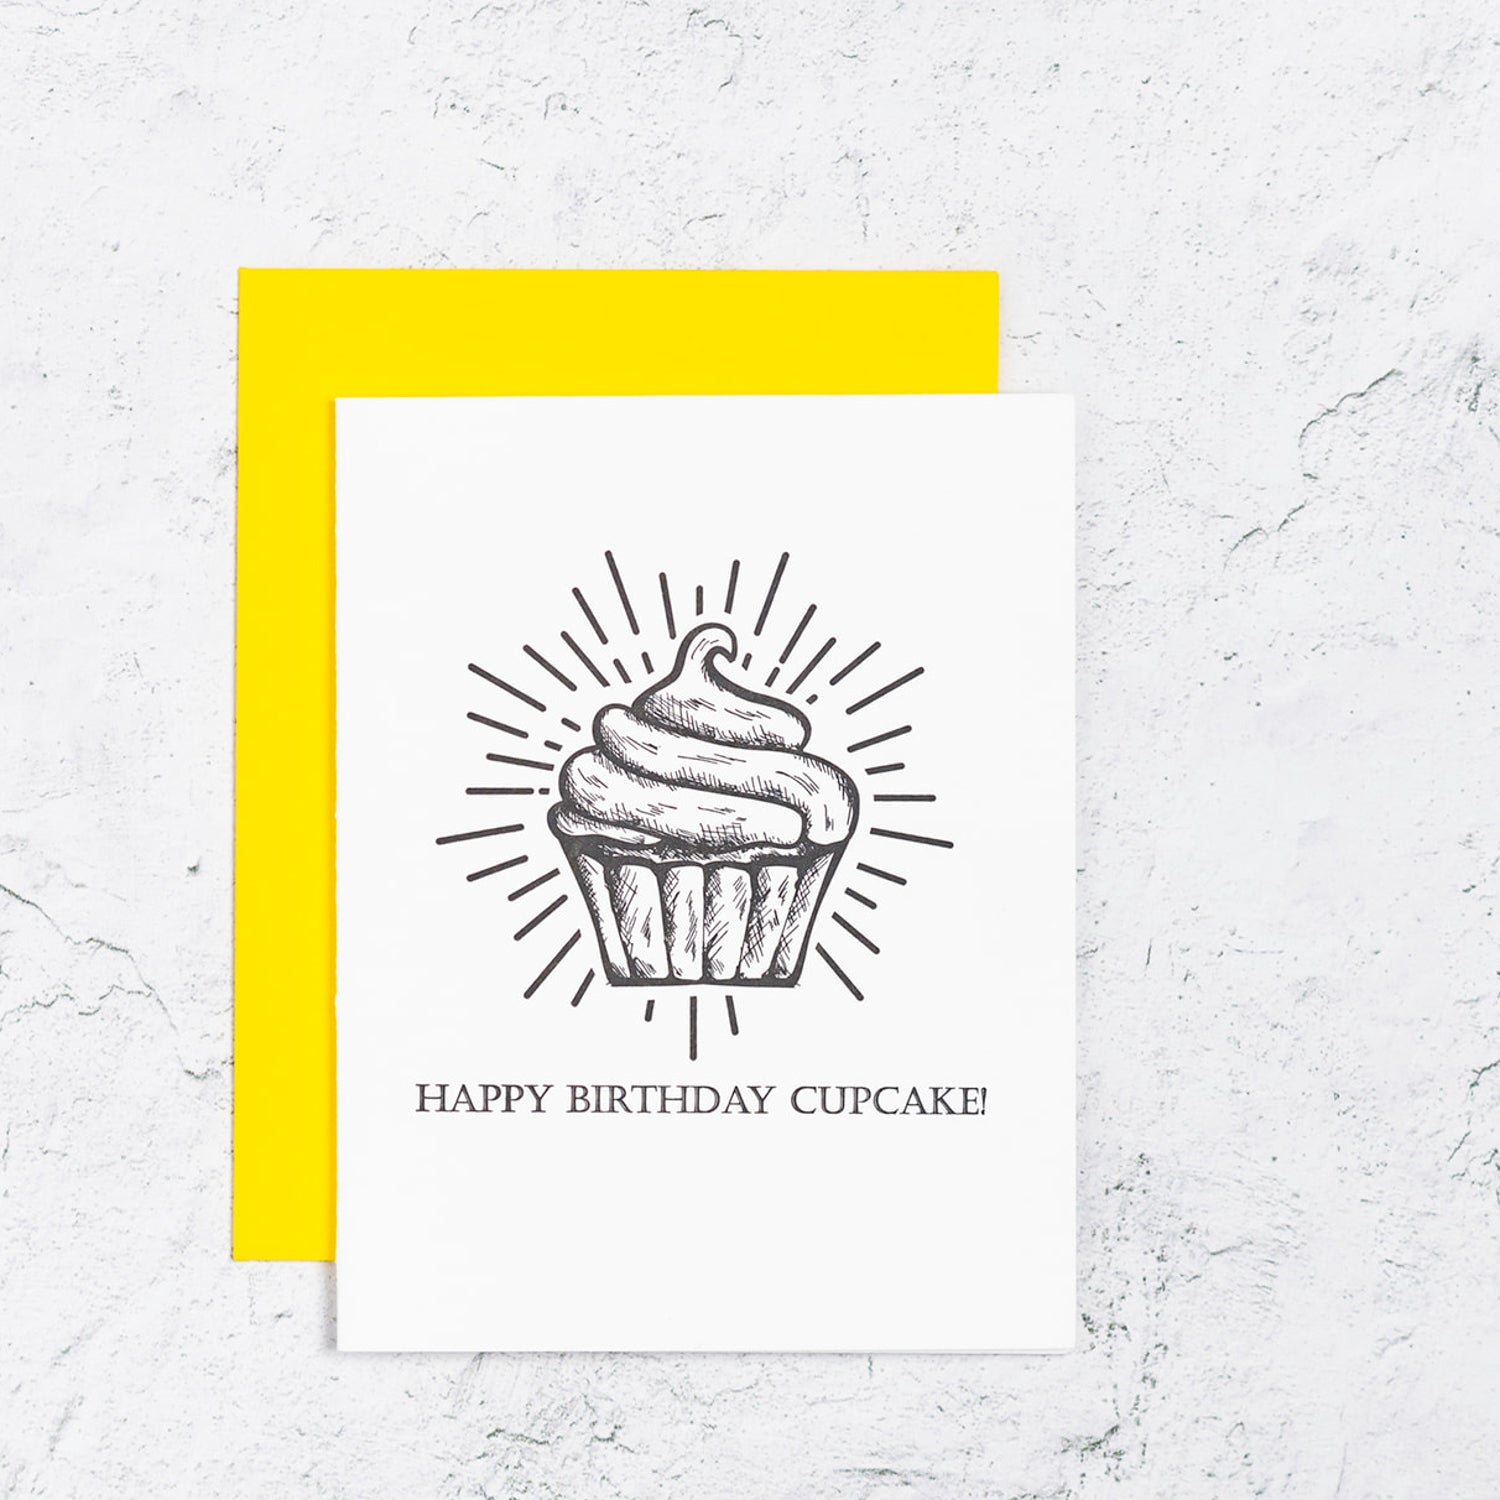 Happy Birthday Letterpress Card With Cupcake  Edit alt text